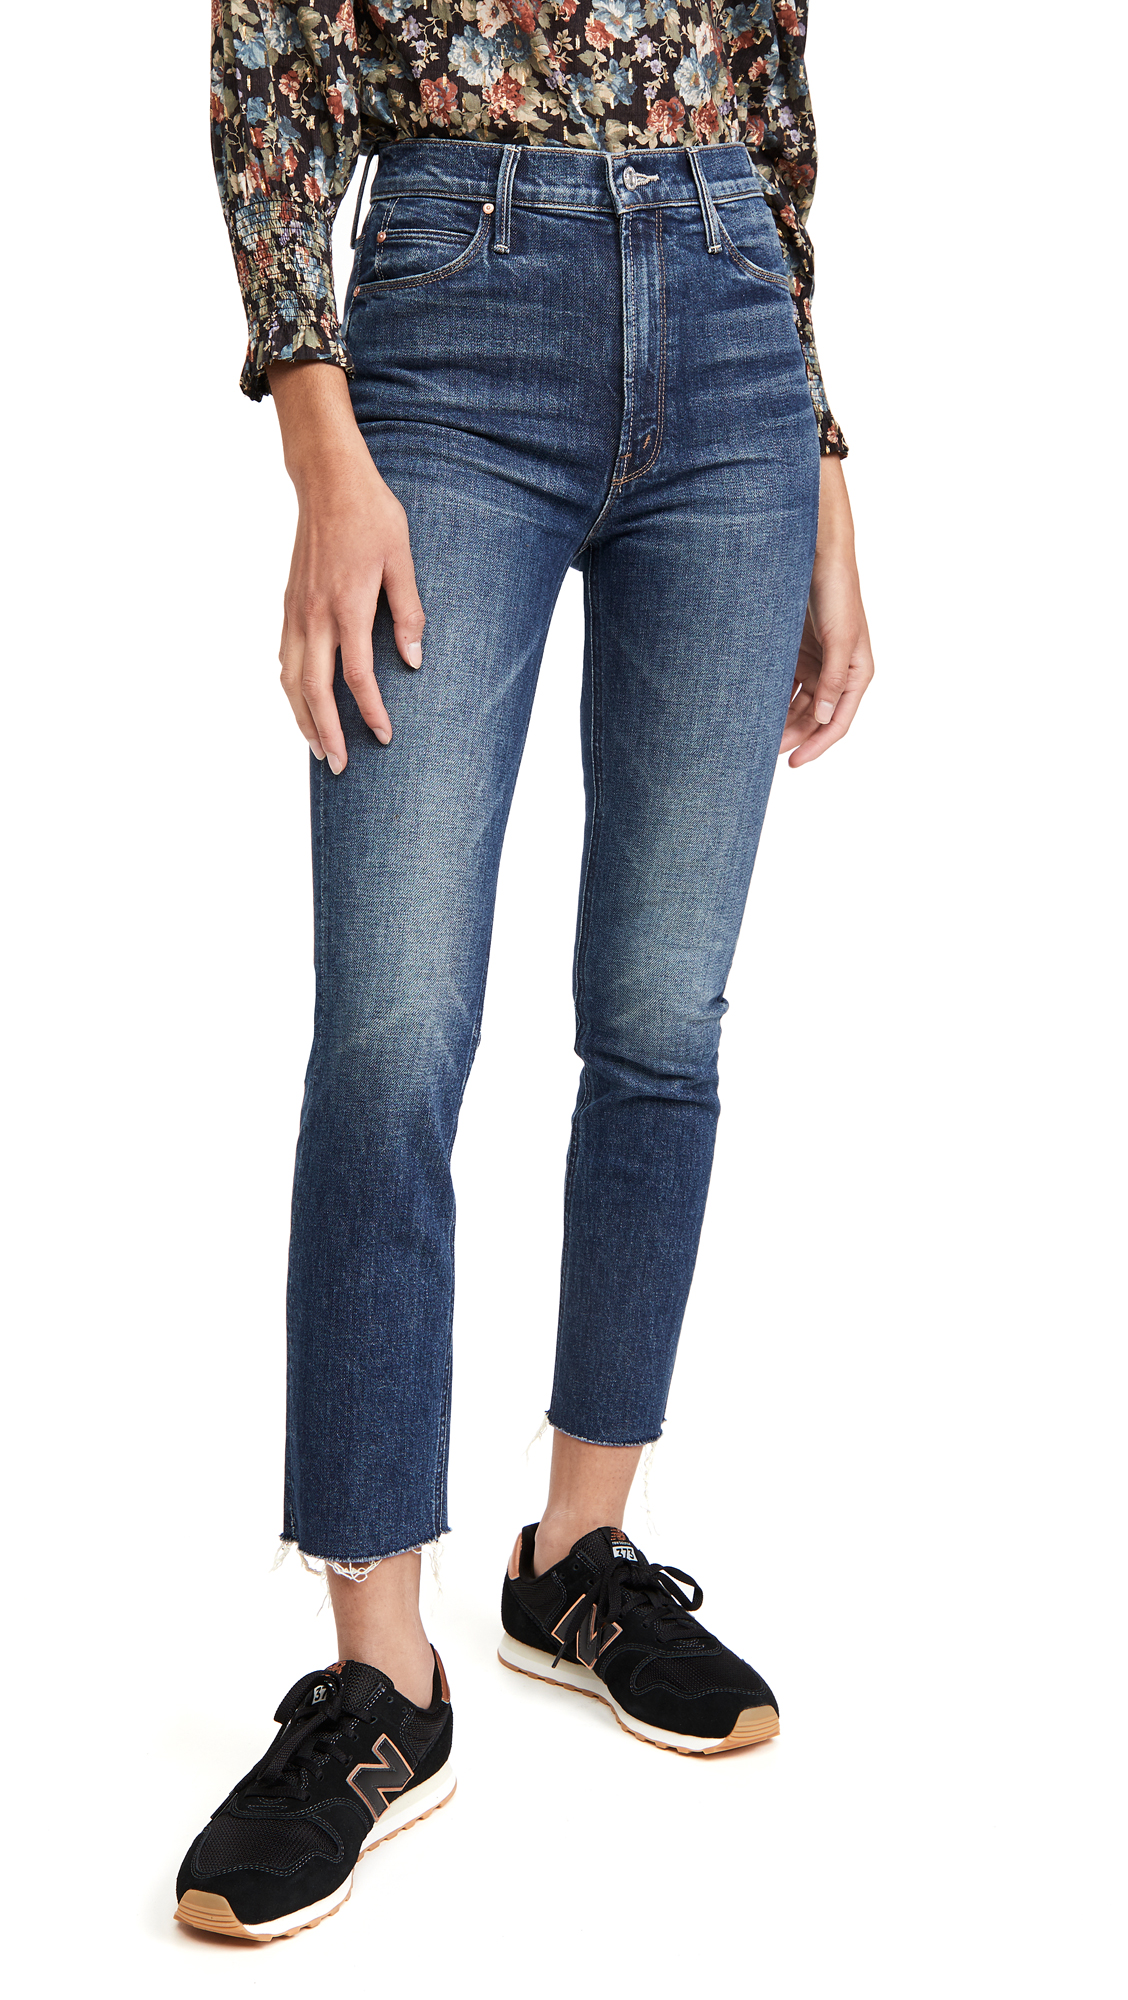 MOTHER MOTHER SUPERIOR THE DAZZLER ANKLE FRAY JEANS